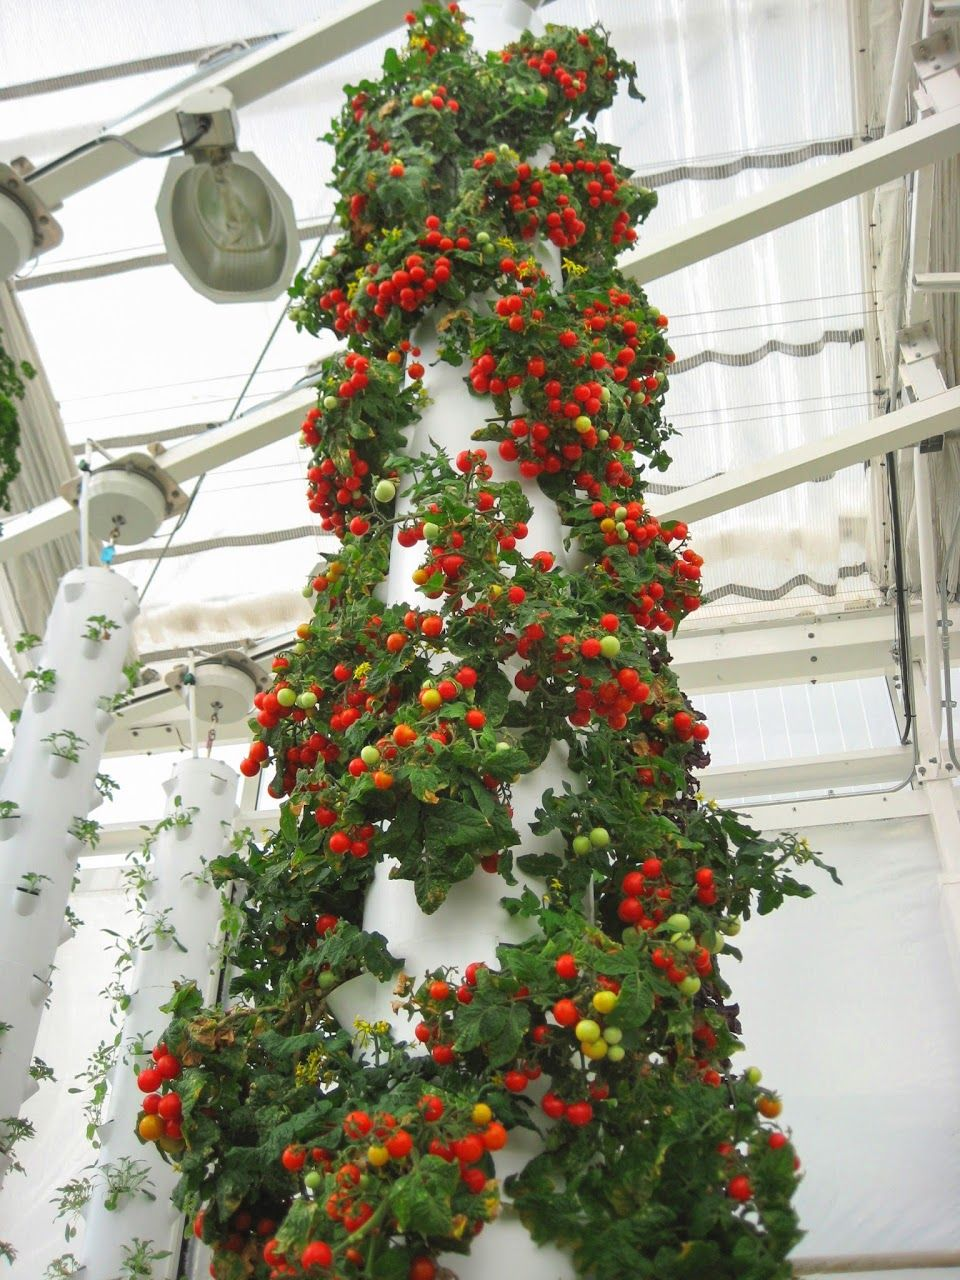 60 Tomato Plants grown in a single Tower Garden! http